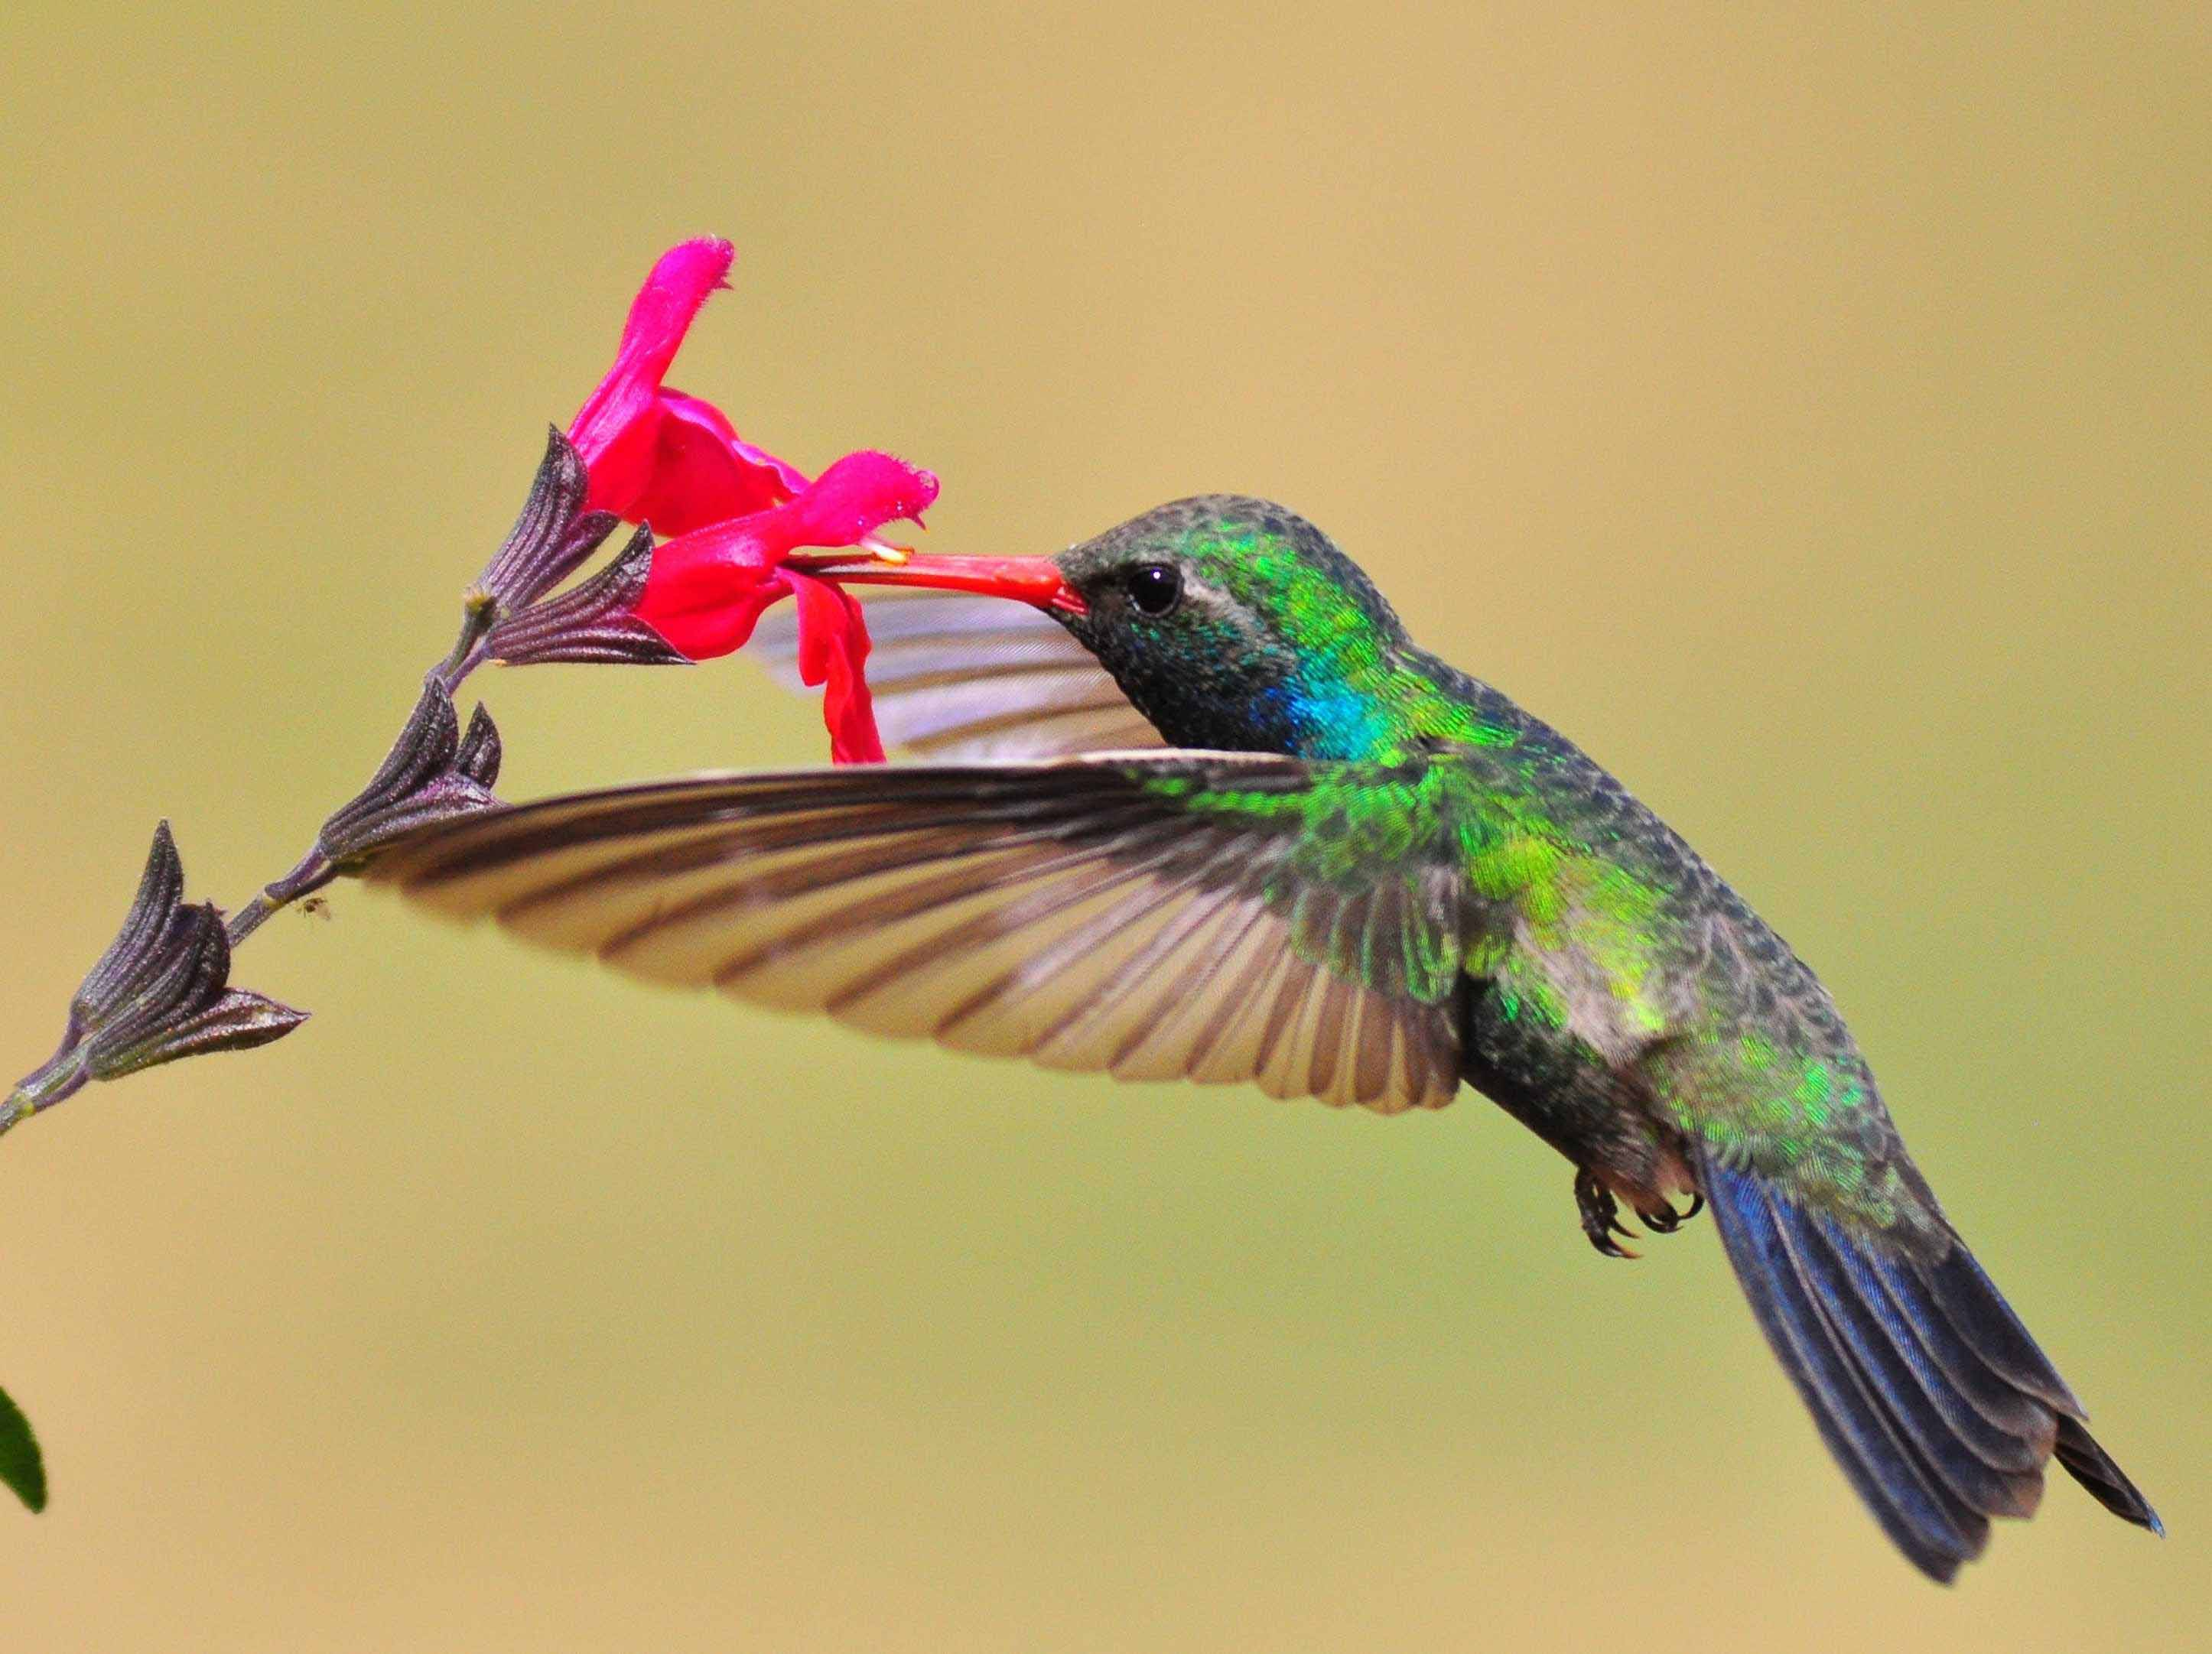 Hummingbird and a flower